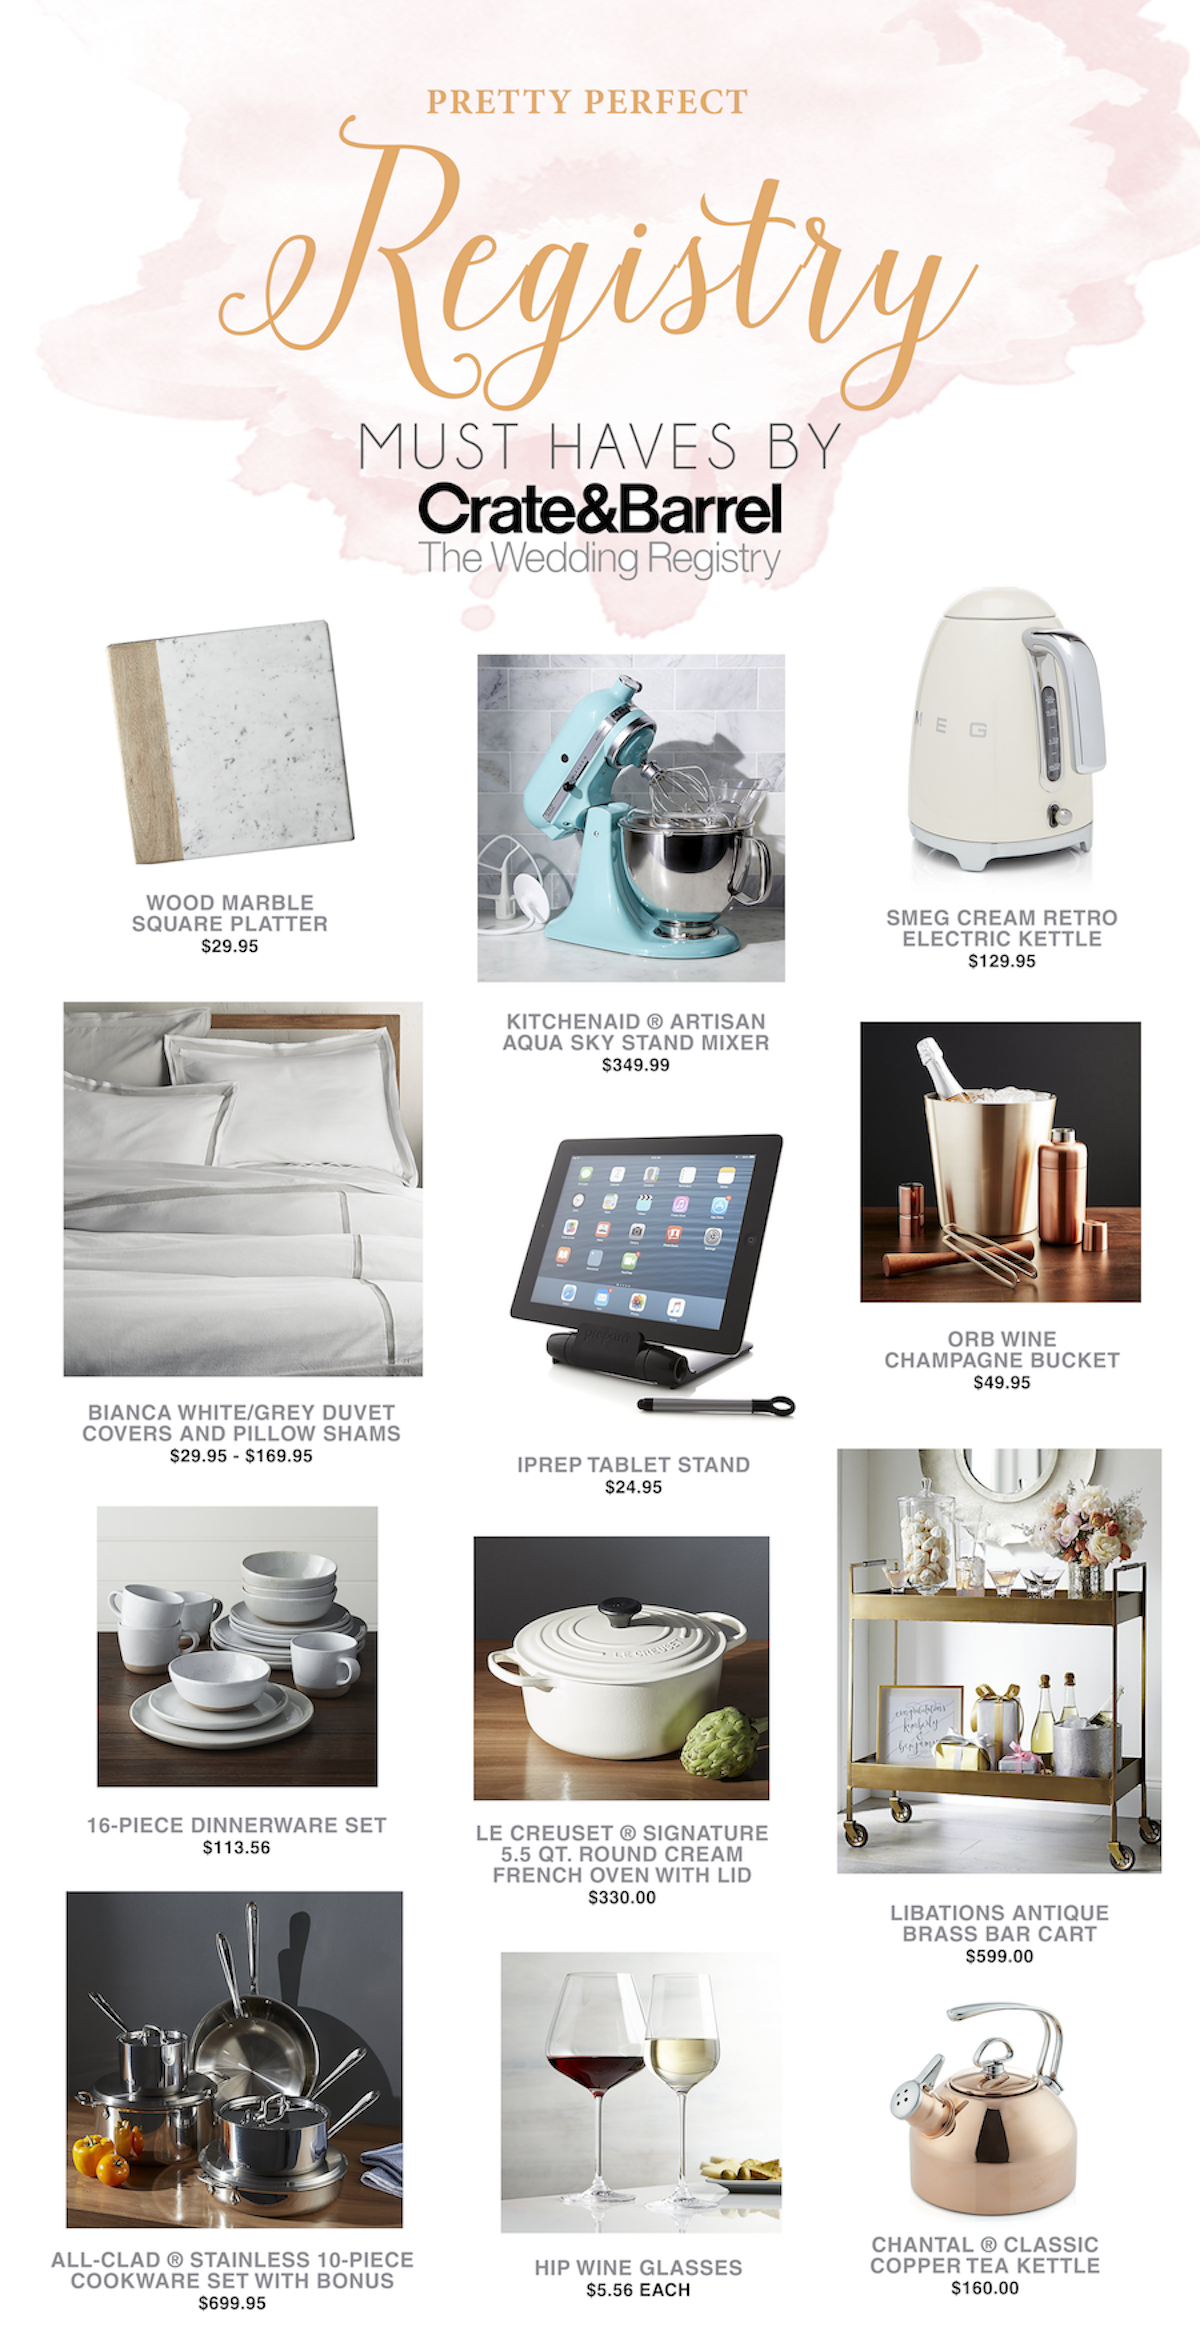 Crate Barrel Wedding Registry.Create Your Dream Wedding Registry With Crate And Barrel